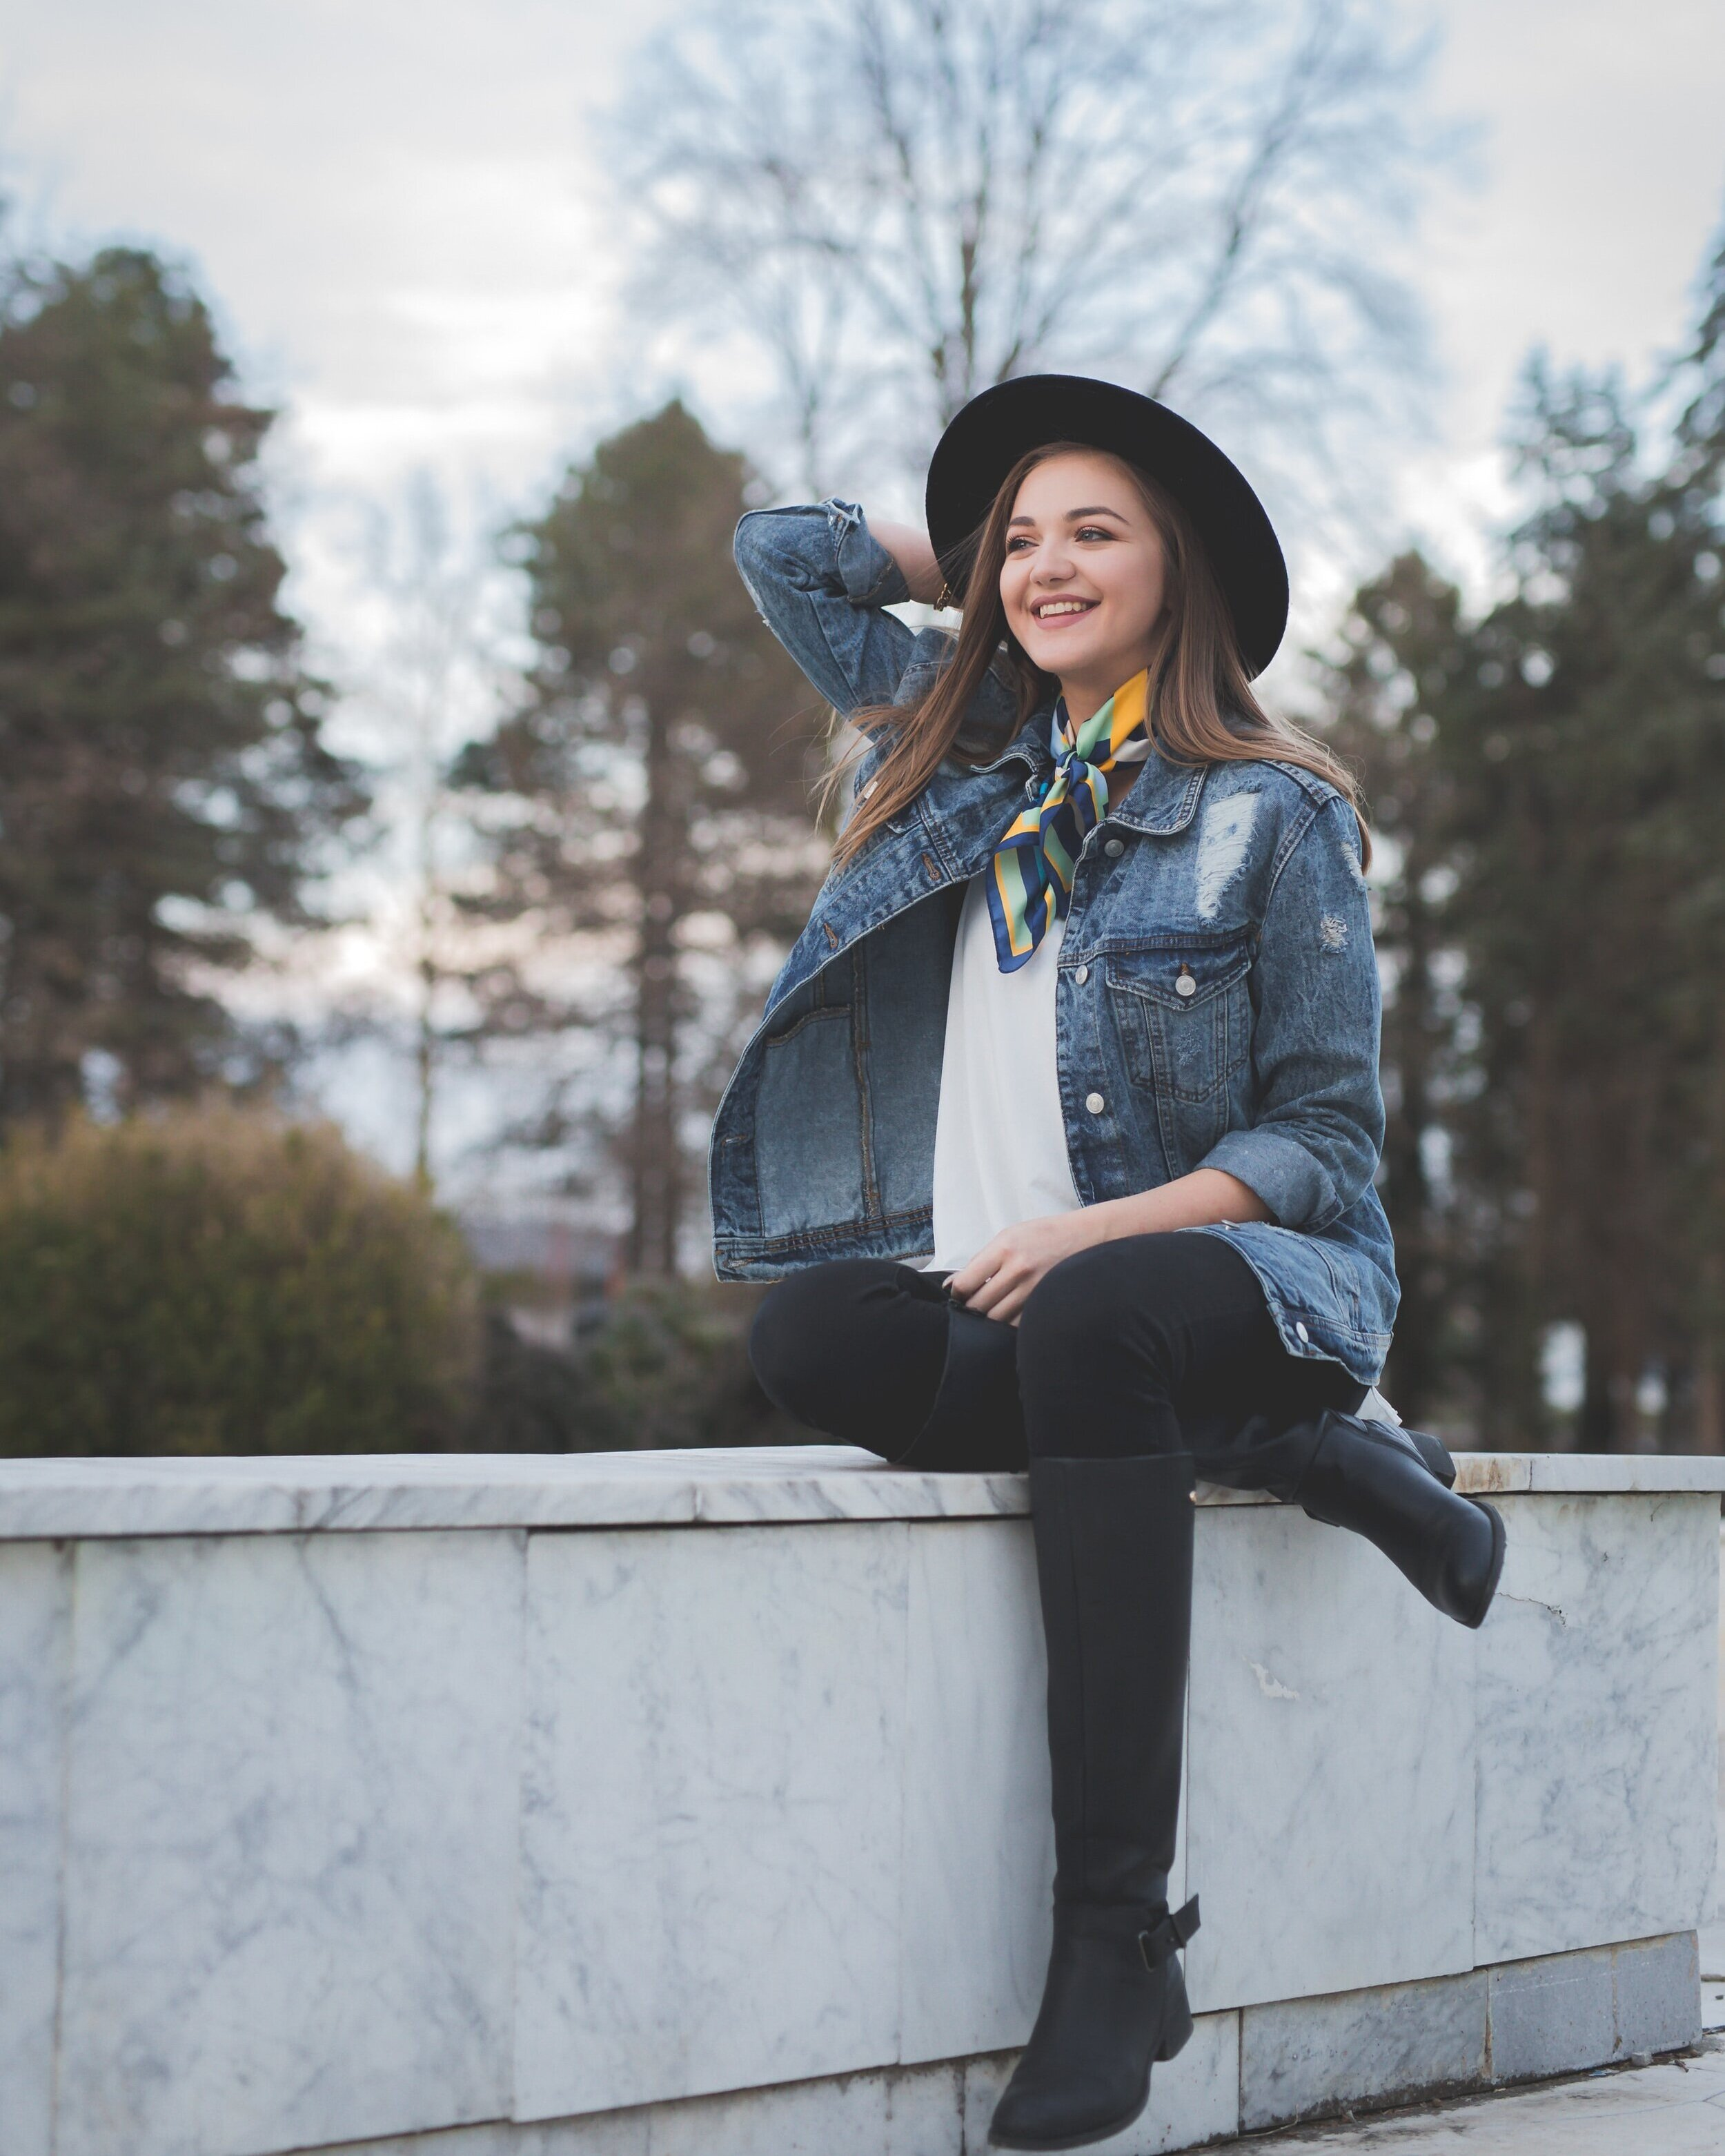 Young lady sitting on marble fence, wearing hat, jean jacket, colorful scarf tied around her neck, black jeans and knee-high boots. What to wear in your 30s is different than fashion for women over 60.